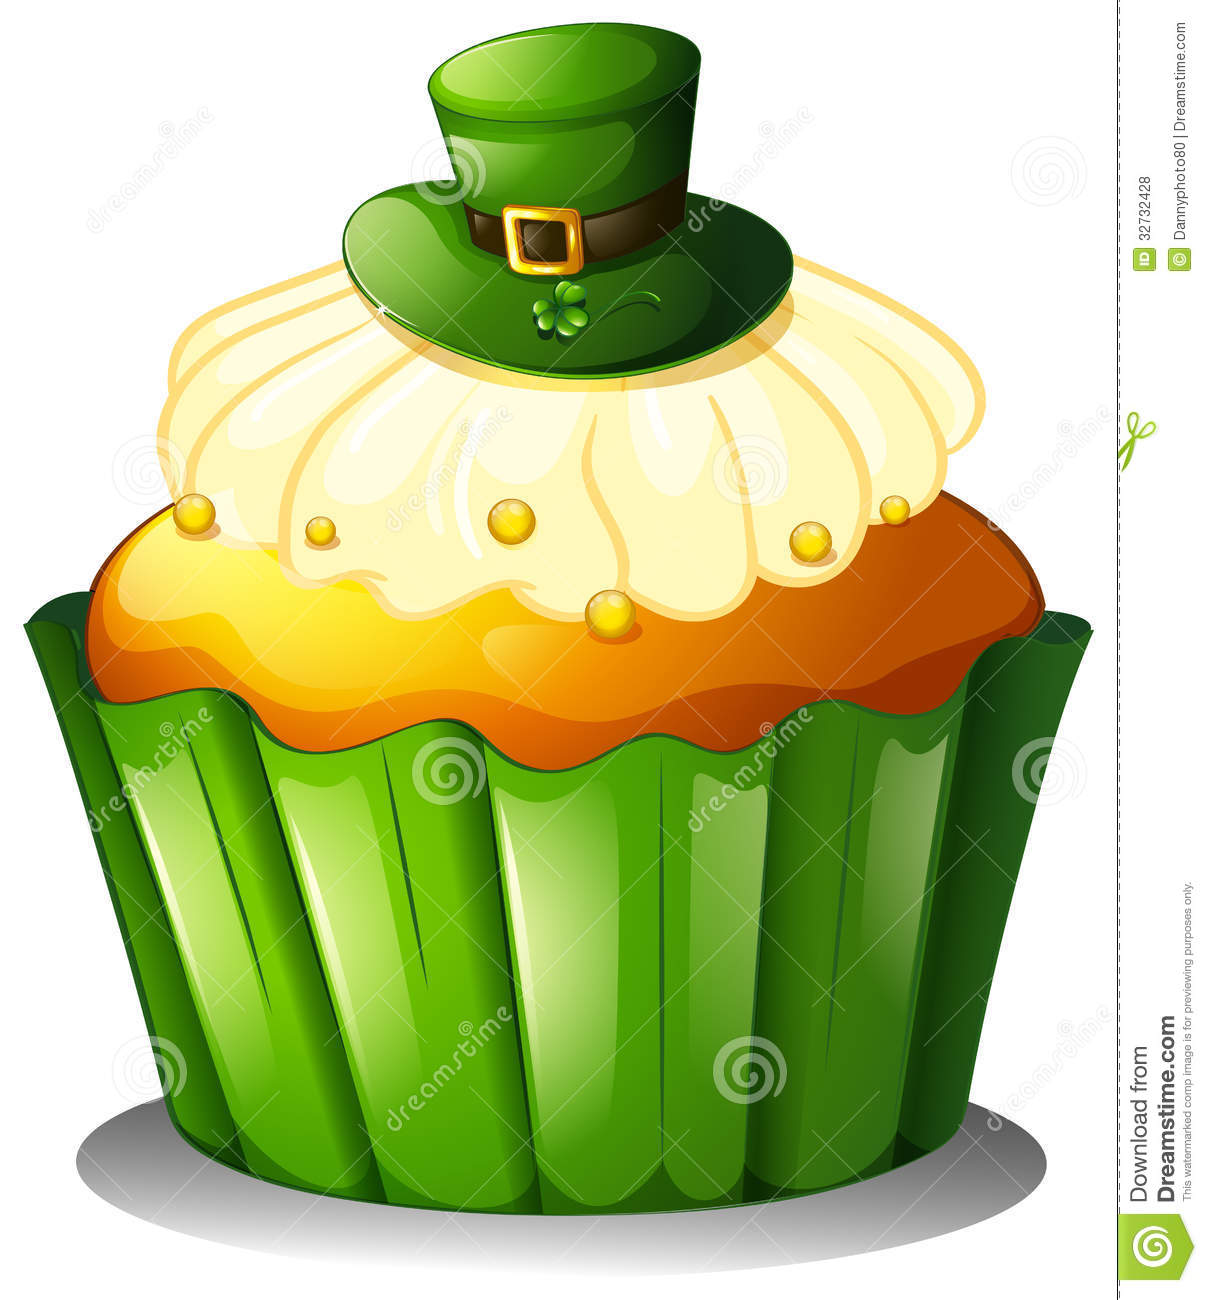 Green Cupcake Clipart Illustration of a cupcake with